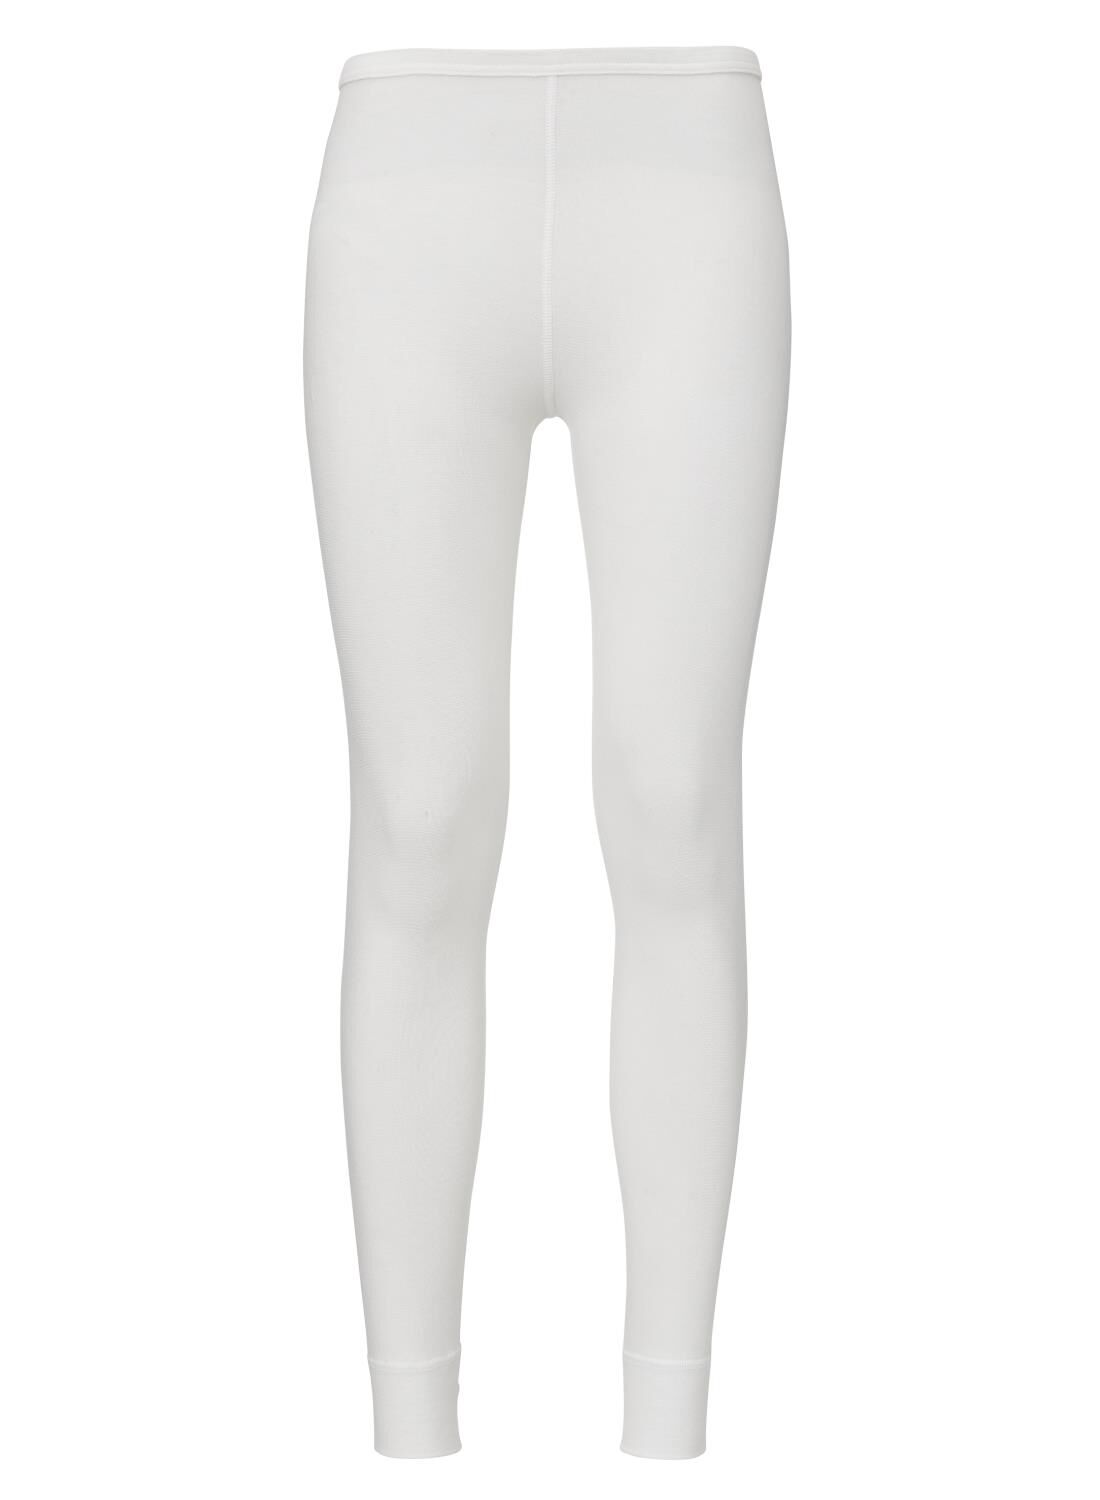 HEMA Dames Thermo Broek Wit (wit)